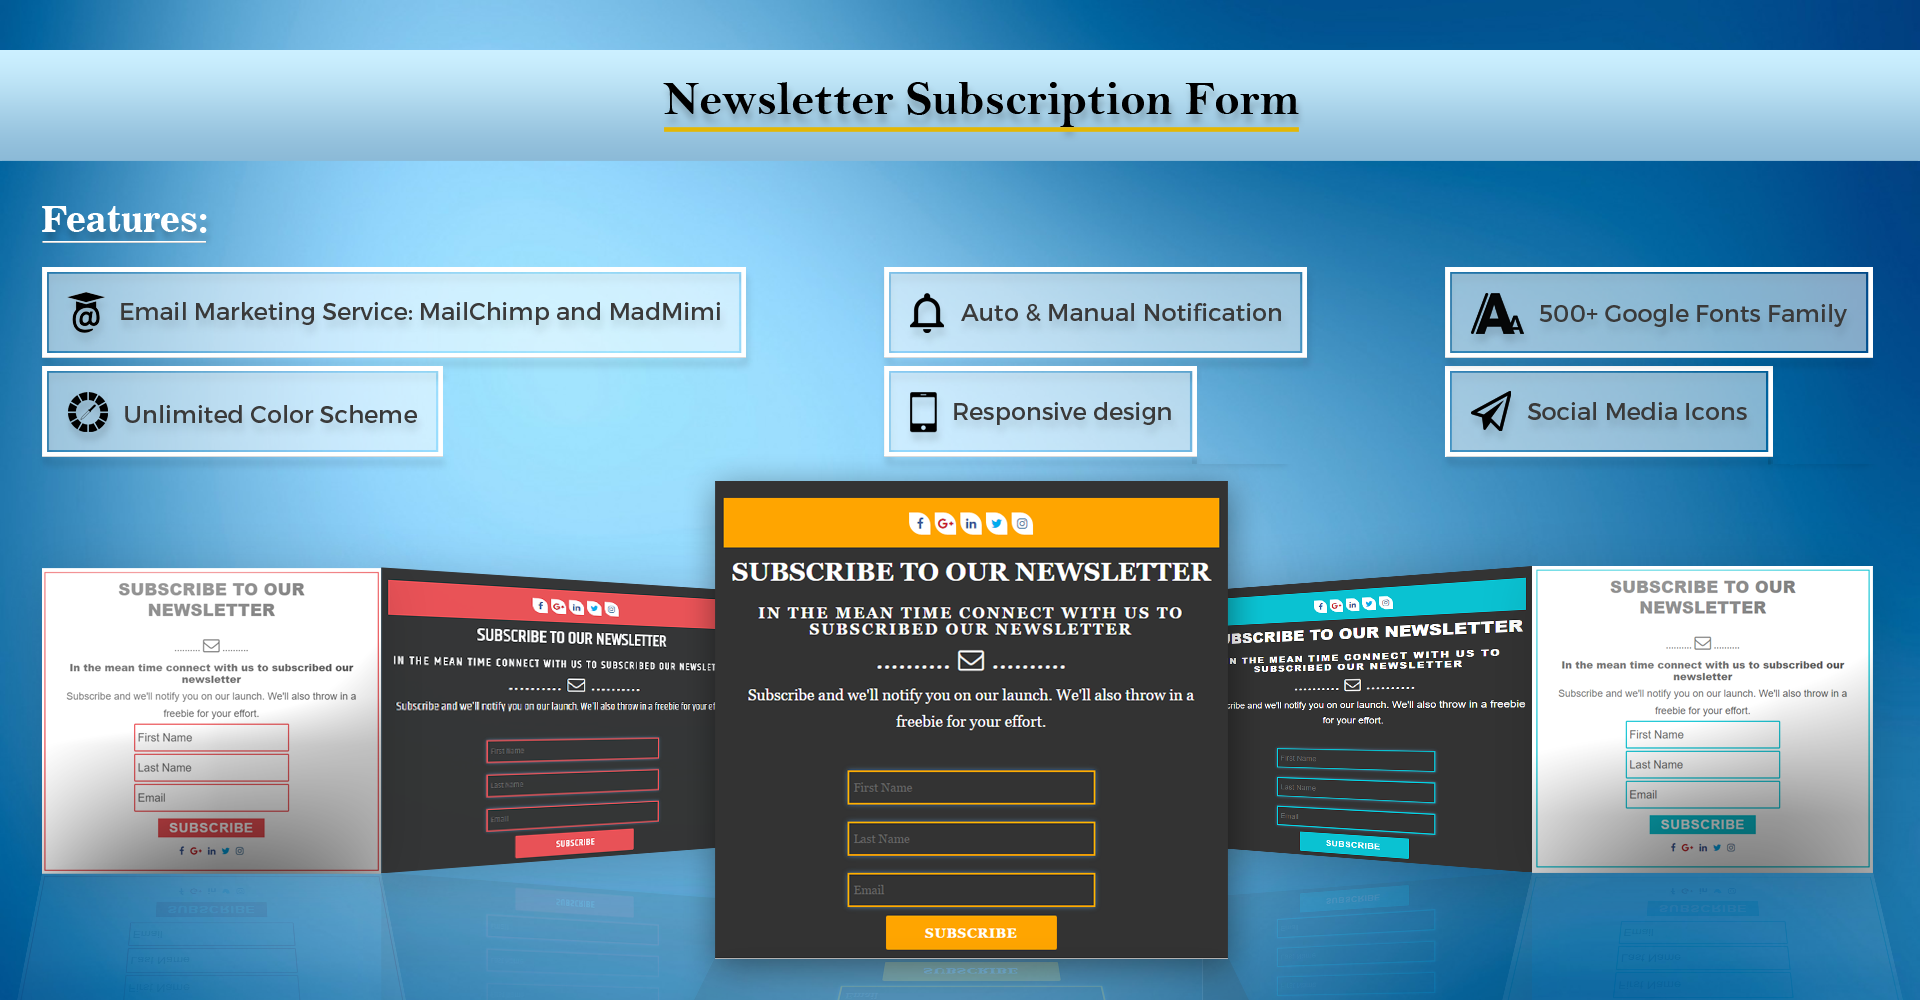 Premium Plugin Newsletter Subscription Form Pro WordPress Plugin